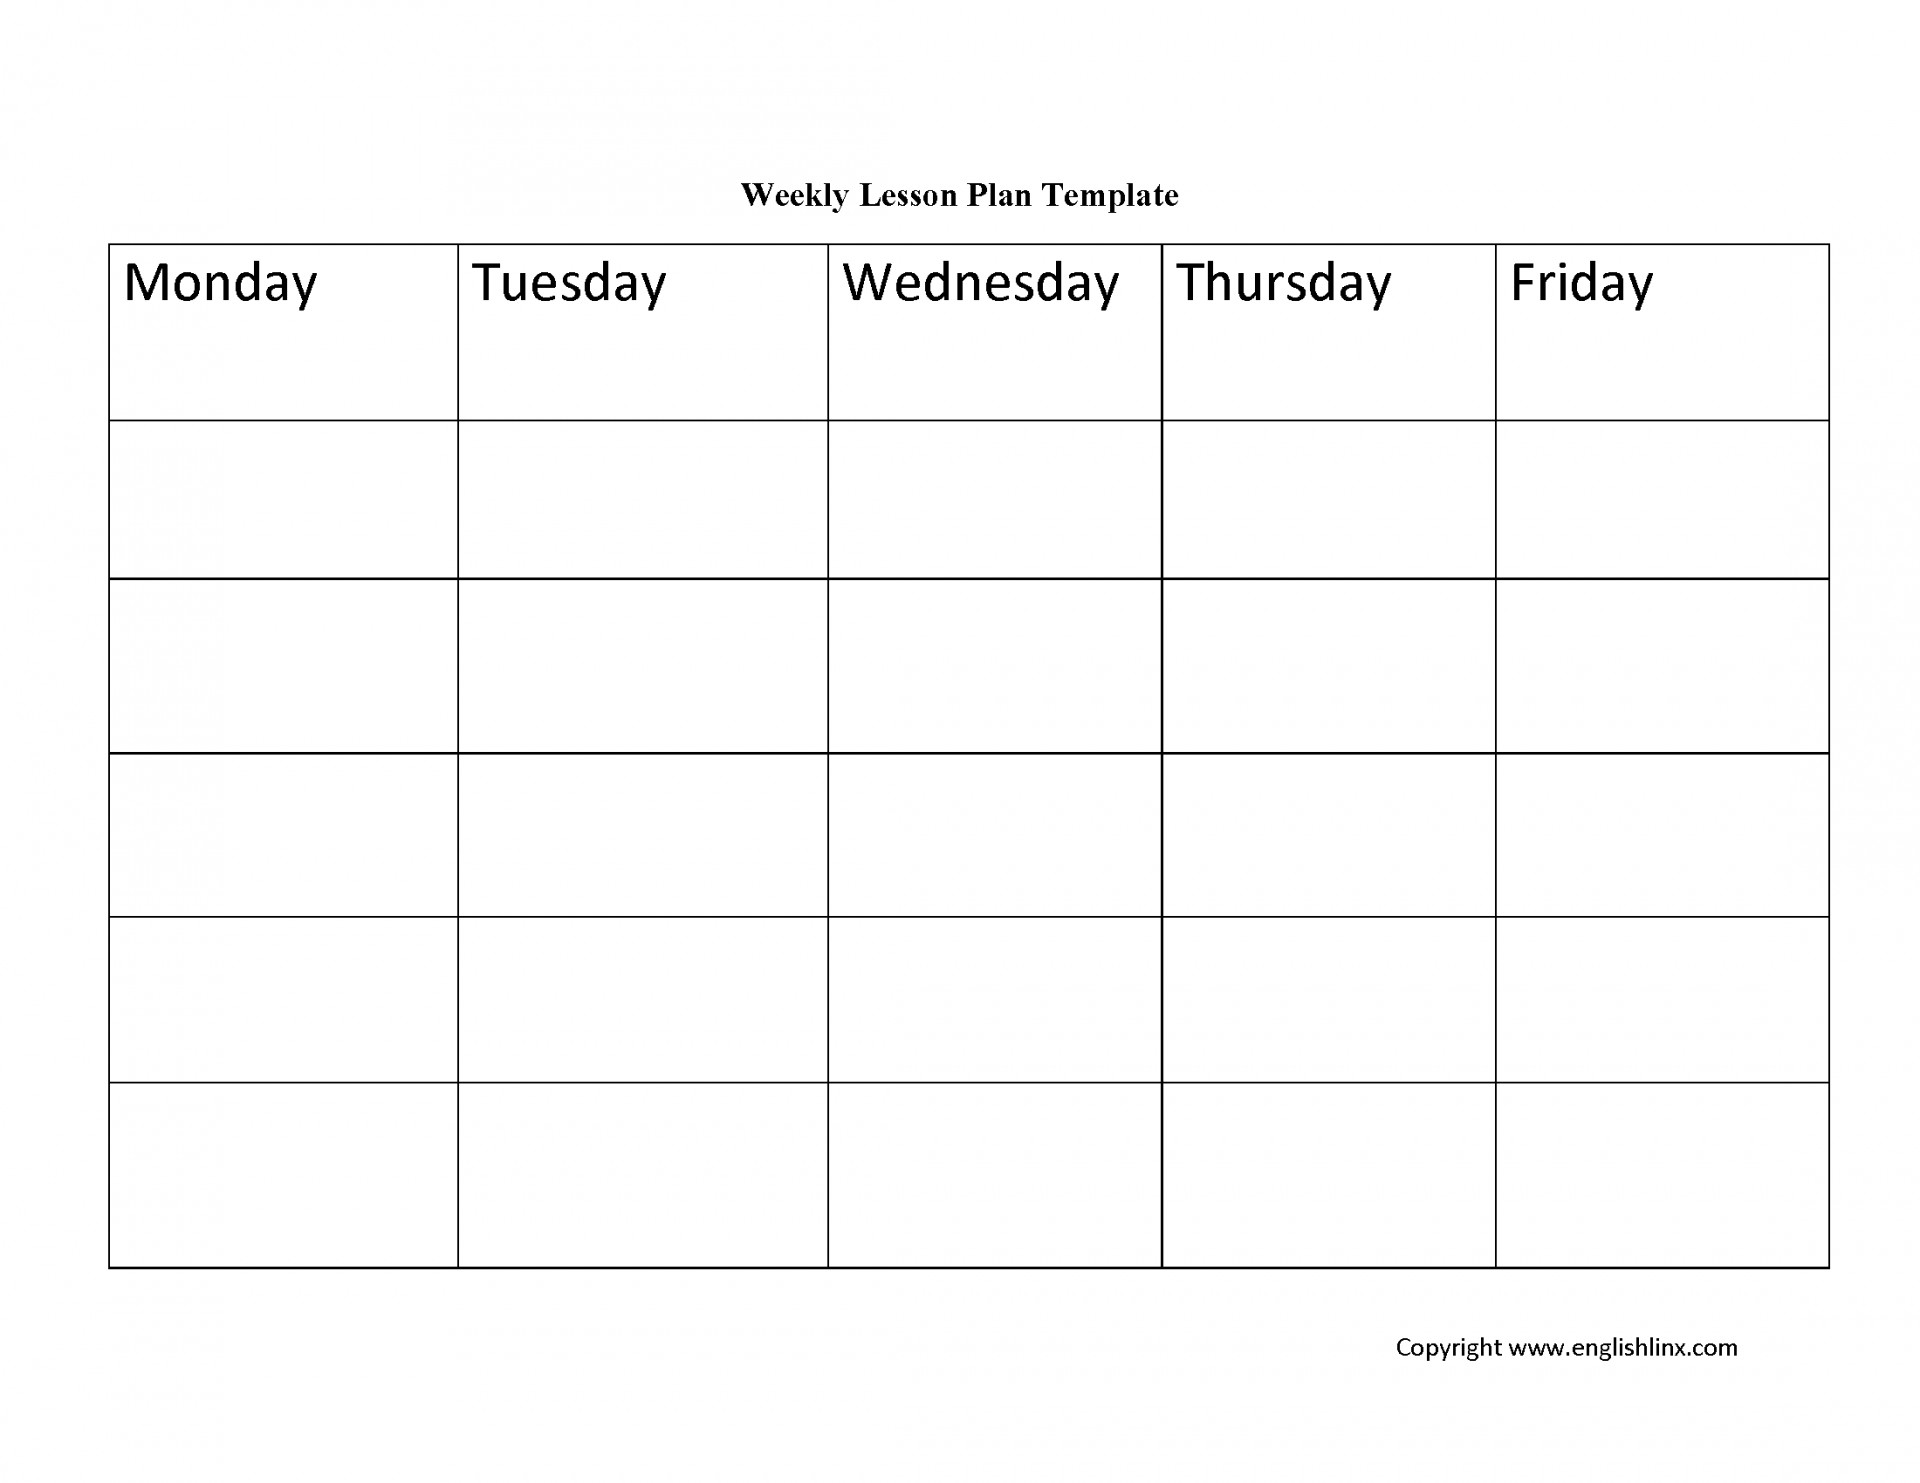 001 Plan Template Weekly Lesson ~ Tinypetition